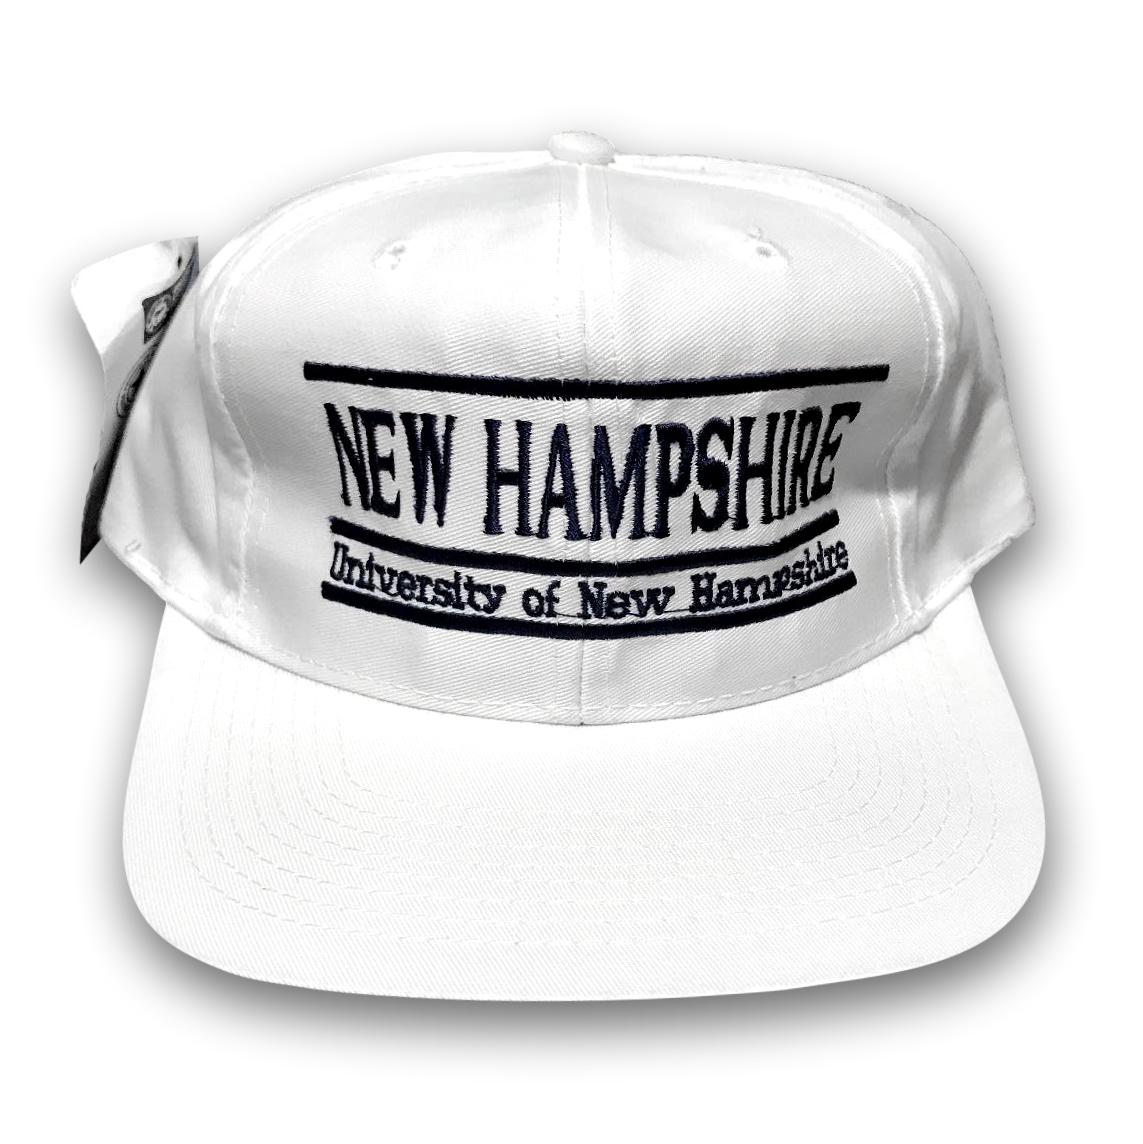 University New Hampshire Vintage Snapback